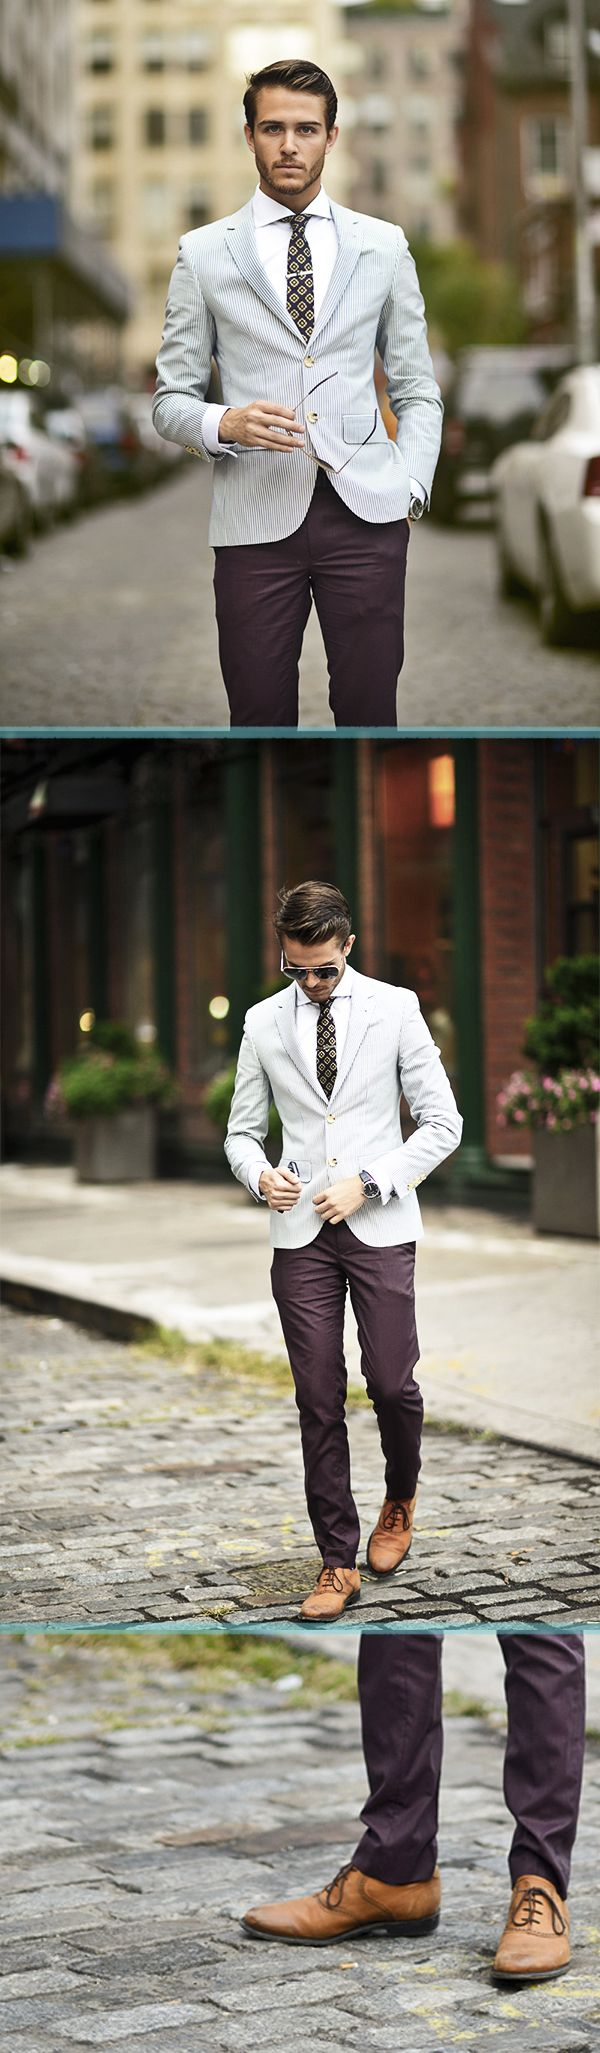 Grey or pale blue subtle stripe jacket + dark brown or burgundy trousers + tan shoes, white shirt, printed tie. Sunglasses.